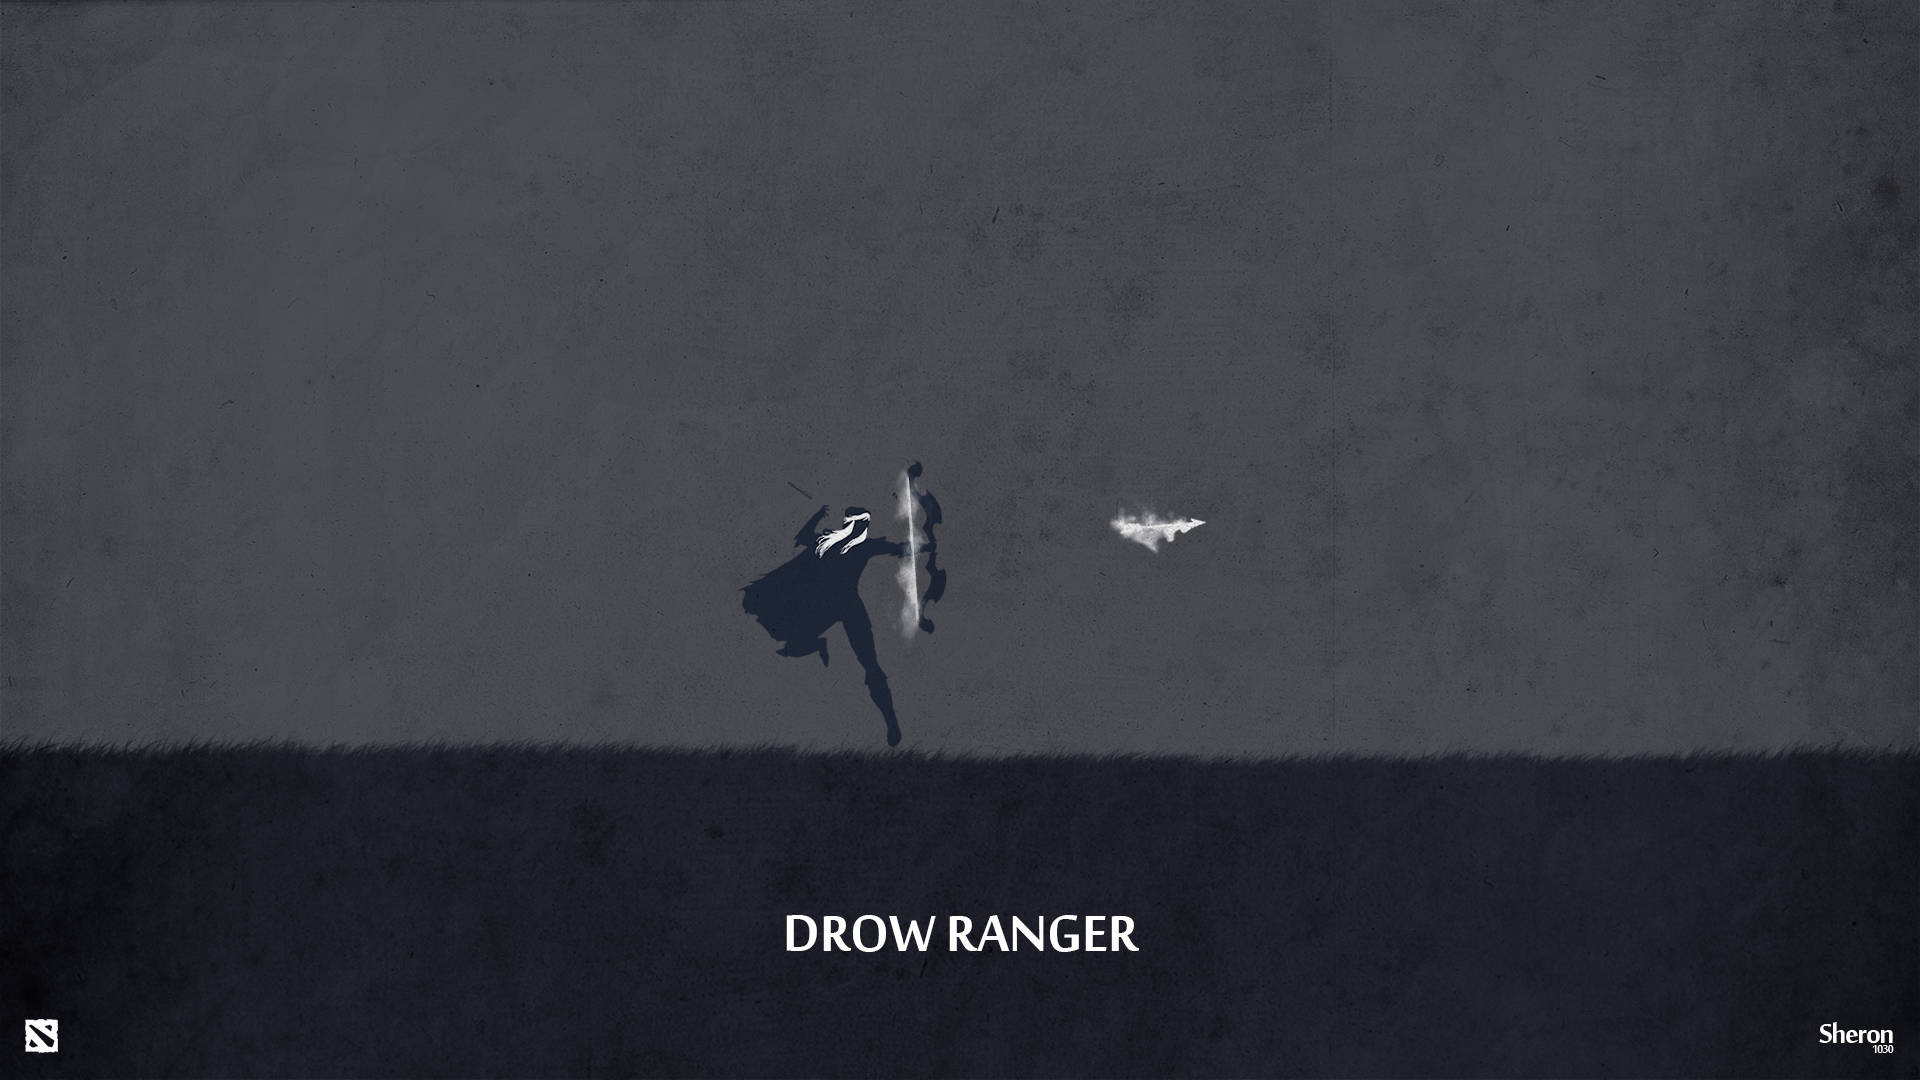 Dota 2 - Drow Ranger Wallpaper by sheron1030